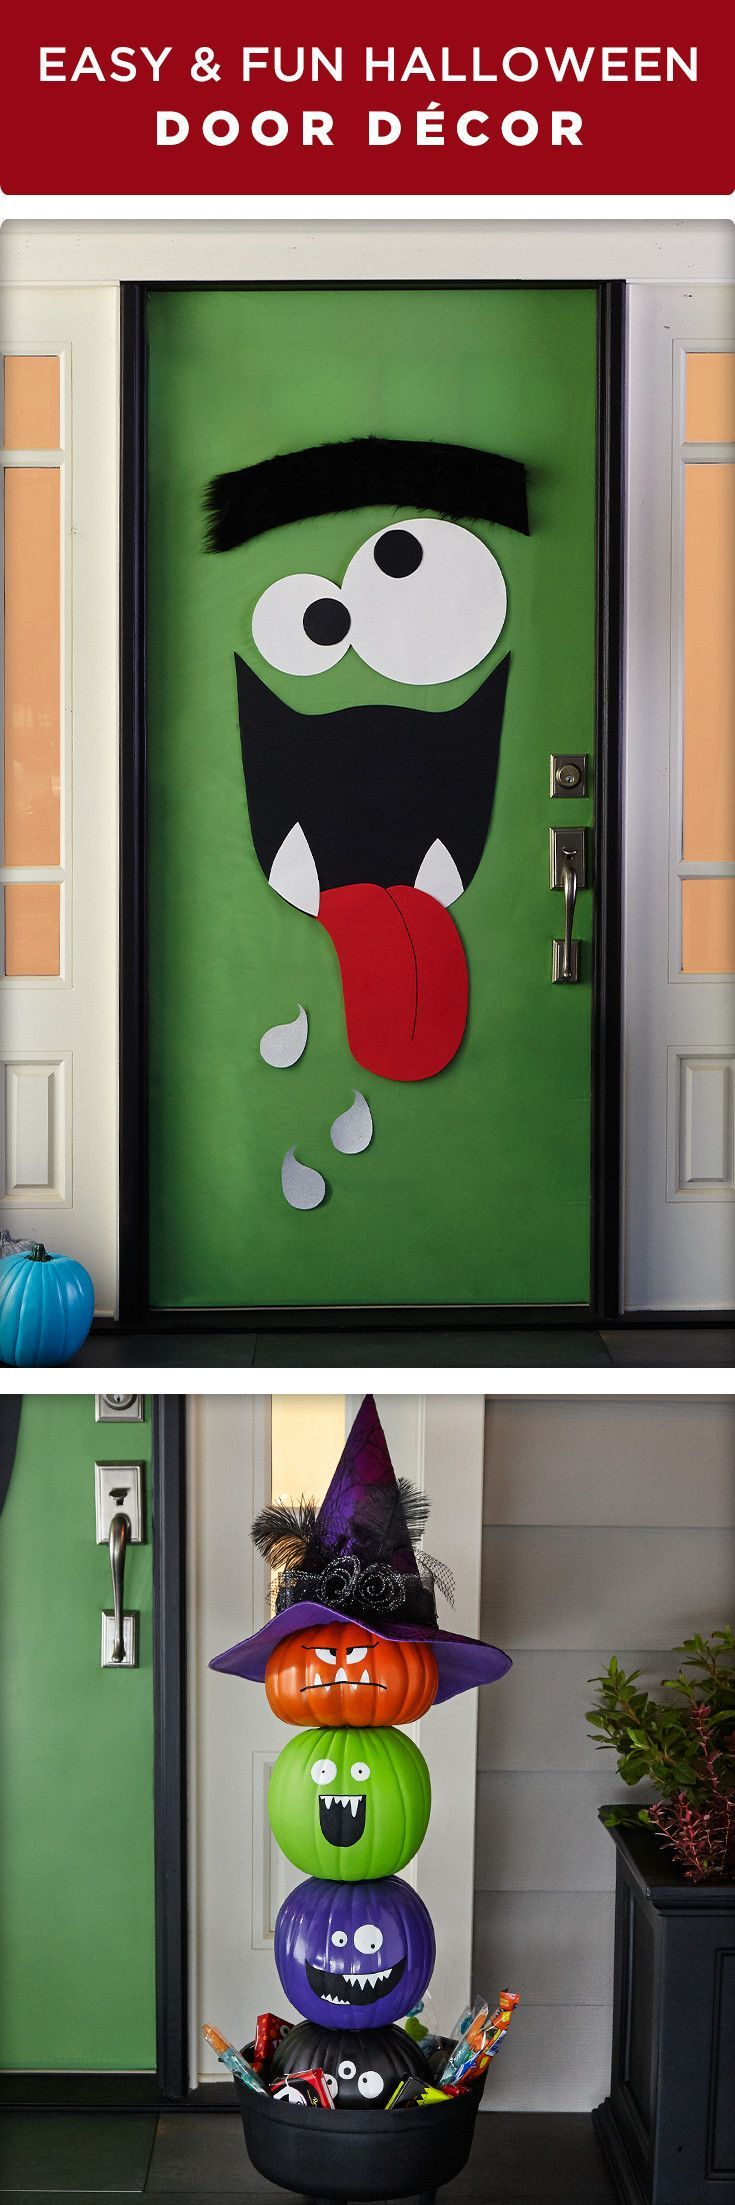 decorate your front door for trick or treaters this halloween these dcor ideas are easy - Decorate Halloween